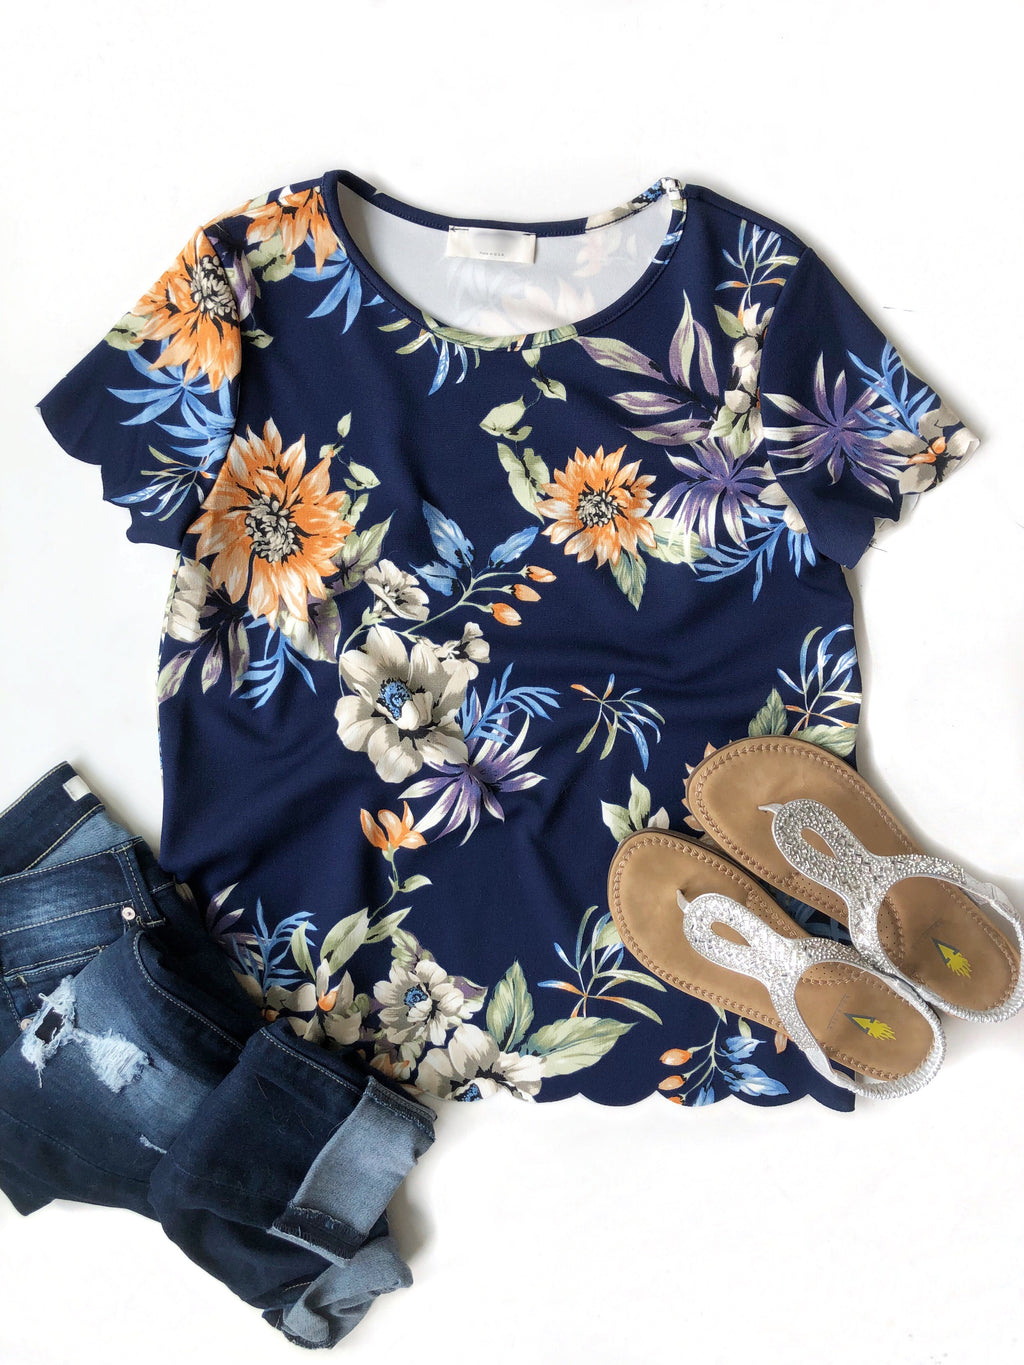 Keeping It Real Scalloped Edge Top in Navy Floral